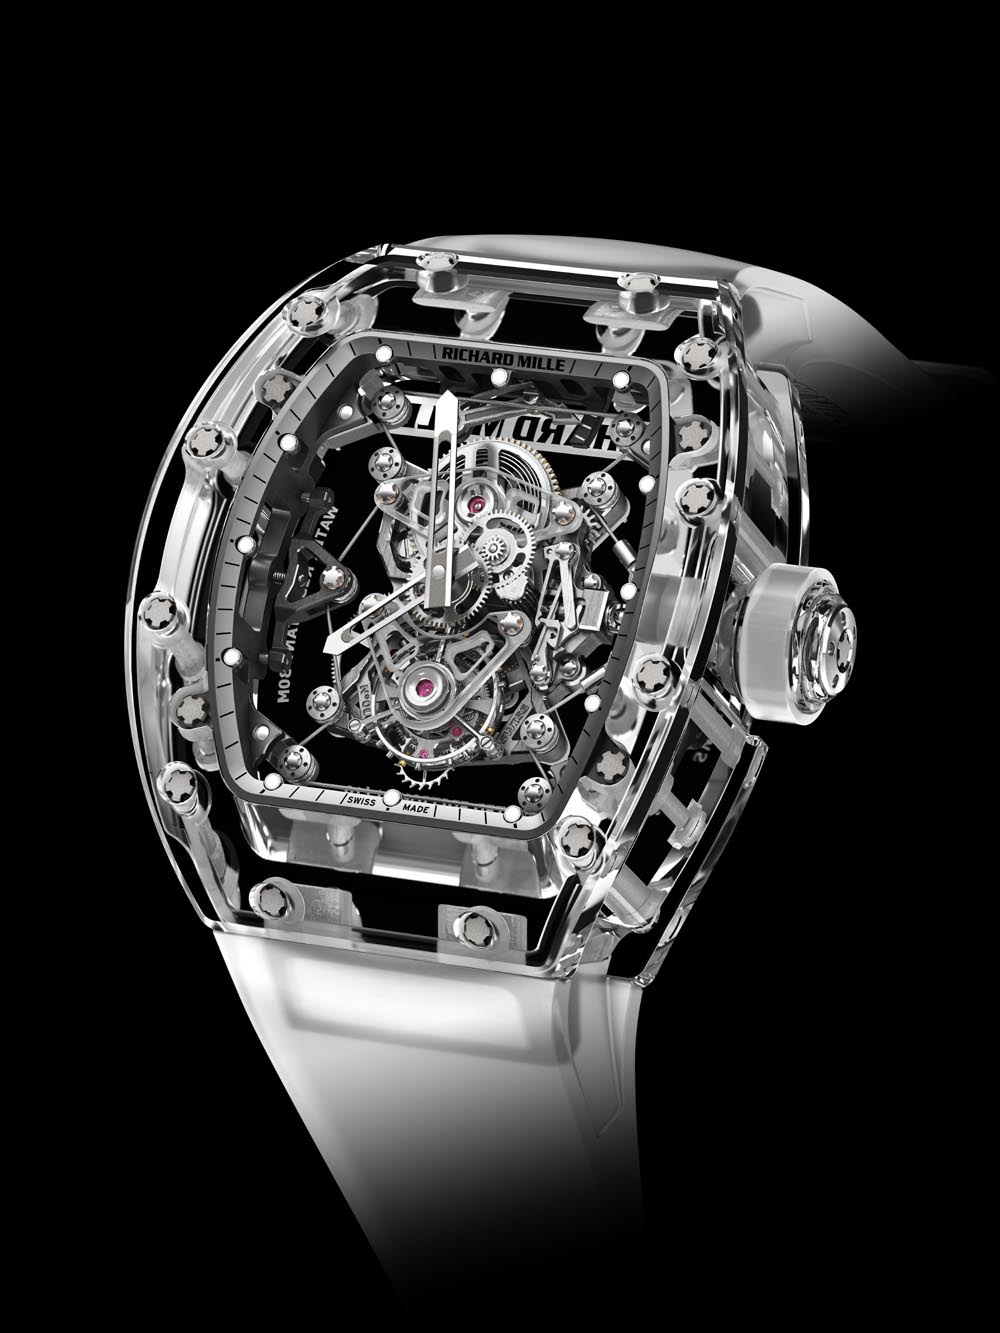 Montre Richard Mille Tourbillon RM 56-02 Saphir